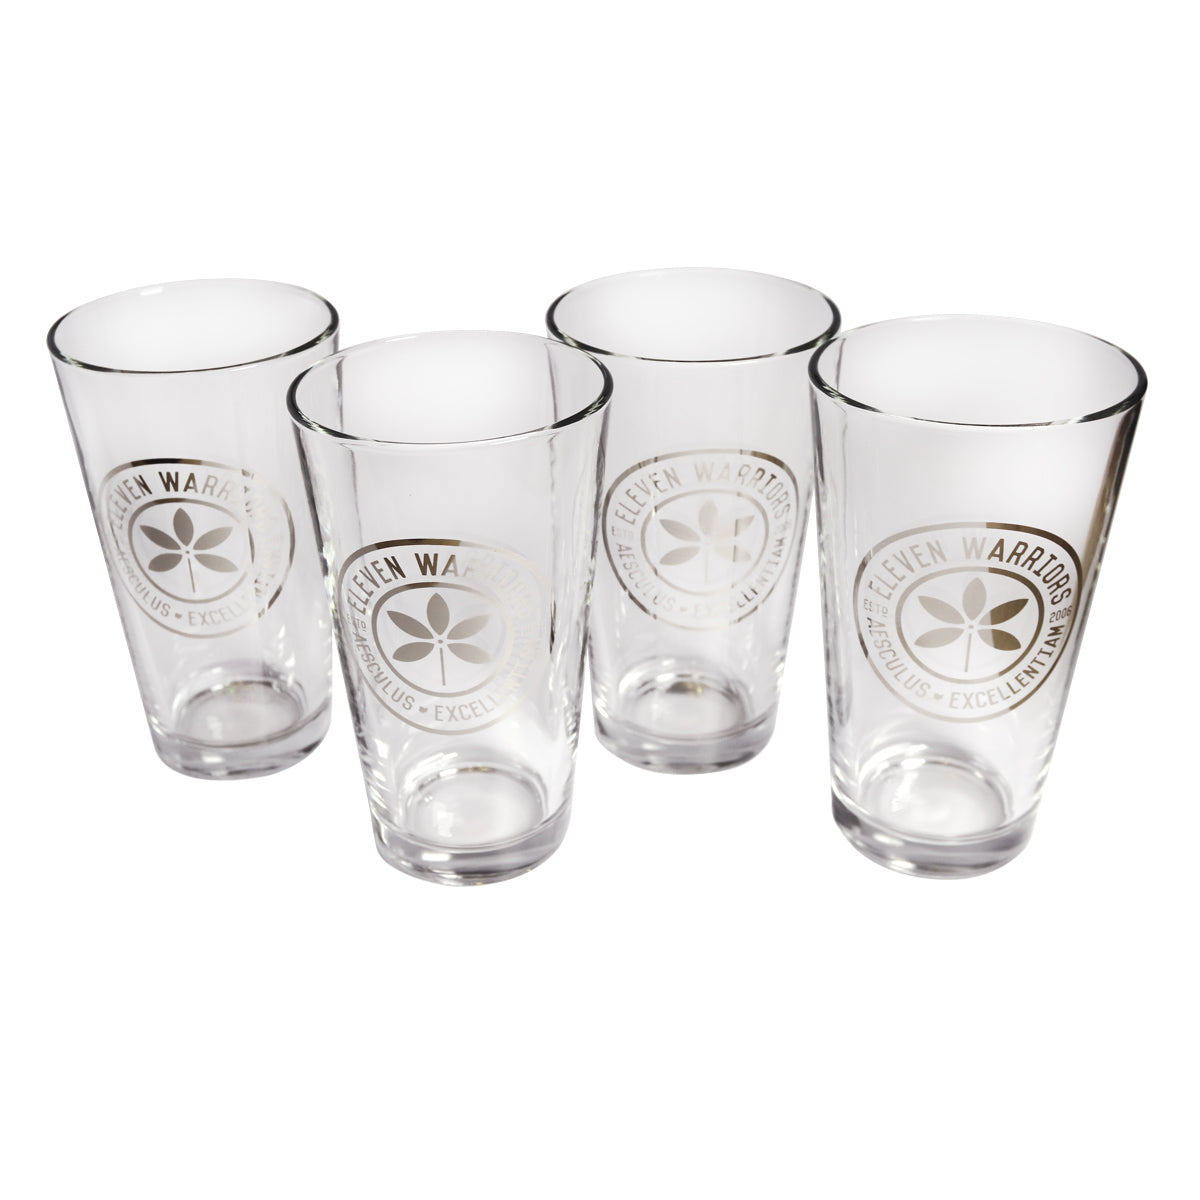 Eleven Warriors 16 oz. Pint Glass (4-Pack)